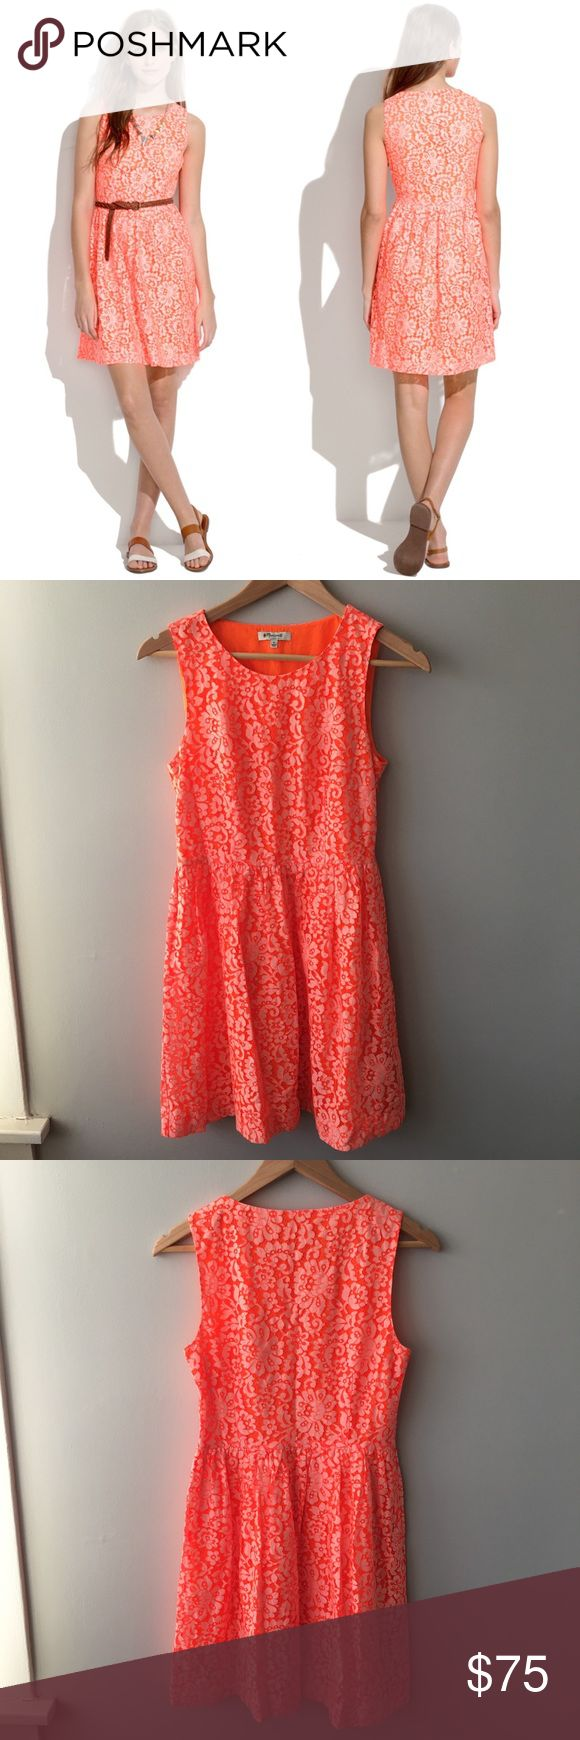 "Madewell Lace Blossom Dress A super-flattering silhouette with a feminine full skirt blooms in lace.  ·         Fitted at waist.  ·         Falls 35 1/2"" from shoulder.  ·         51% Nylon/49% cotton.  ·         Dry clean.  ·         Item 43362  Pretty, bright orange color - almost neon. Worn once and dry cleaned – no stains, holes, or pilling – only a small marker spot on the inner tag. Excellent, pre-owned condition. Bundle & save 💰! Sorry - 🚫 trades! Madewell Dresses"